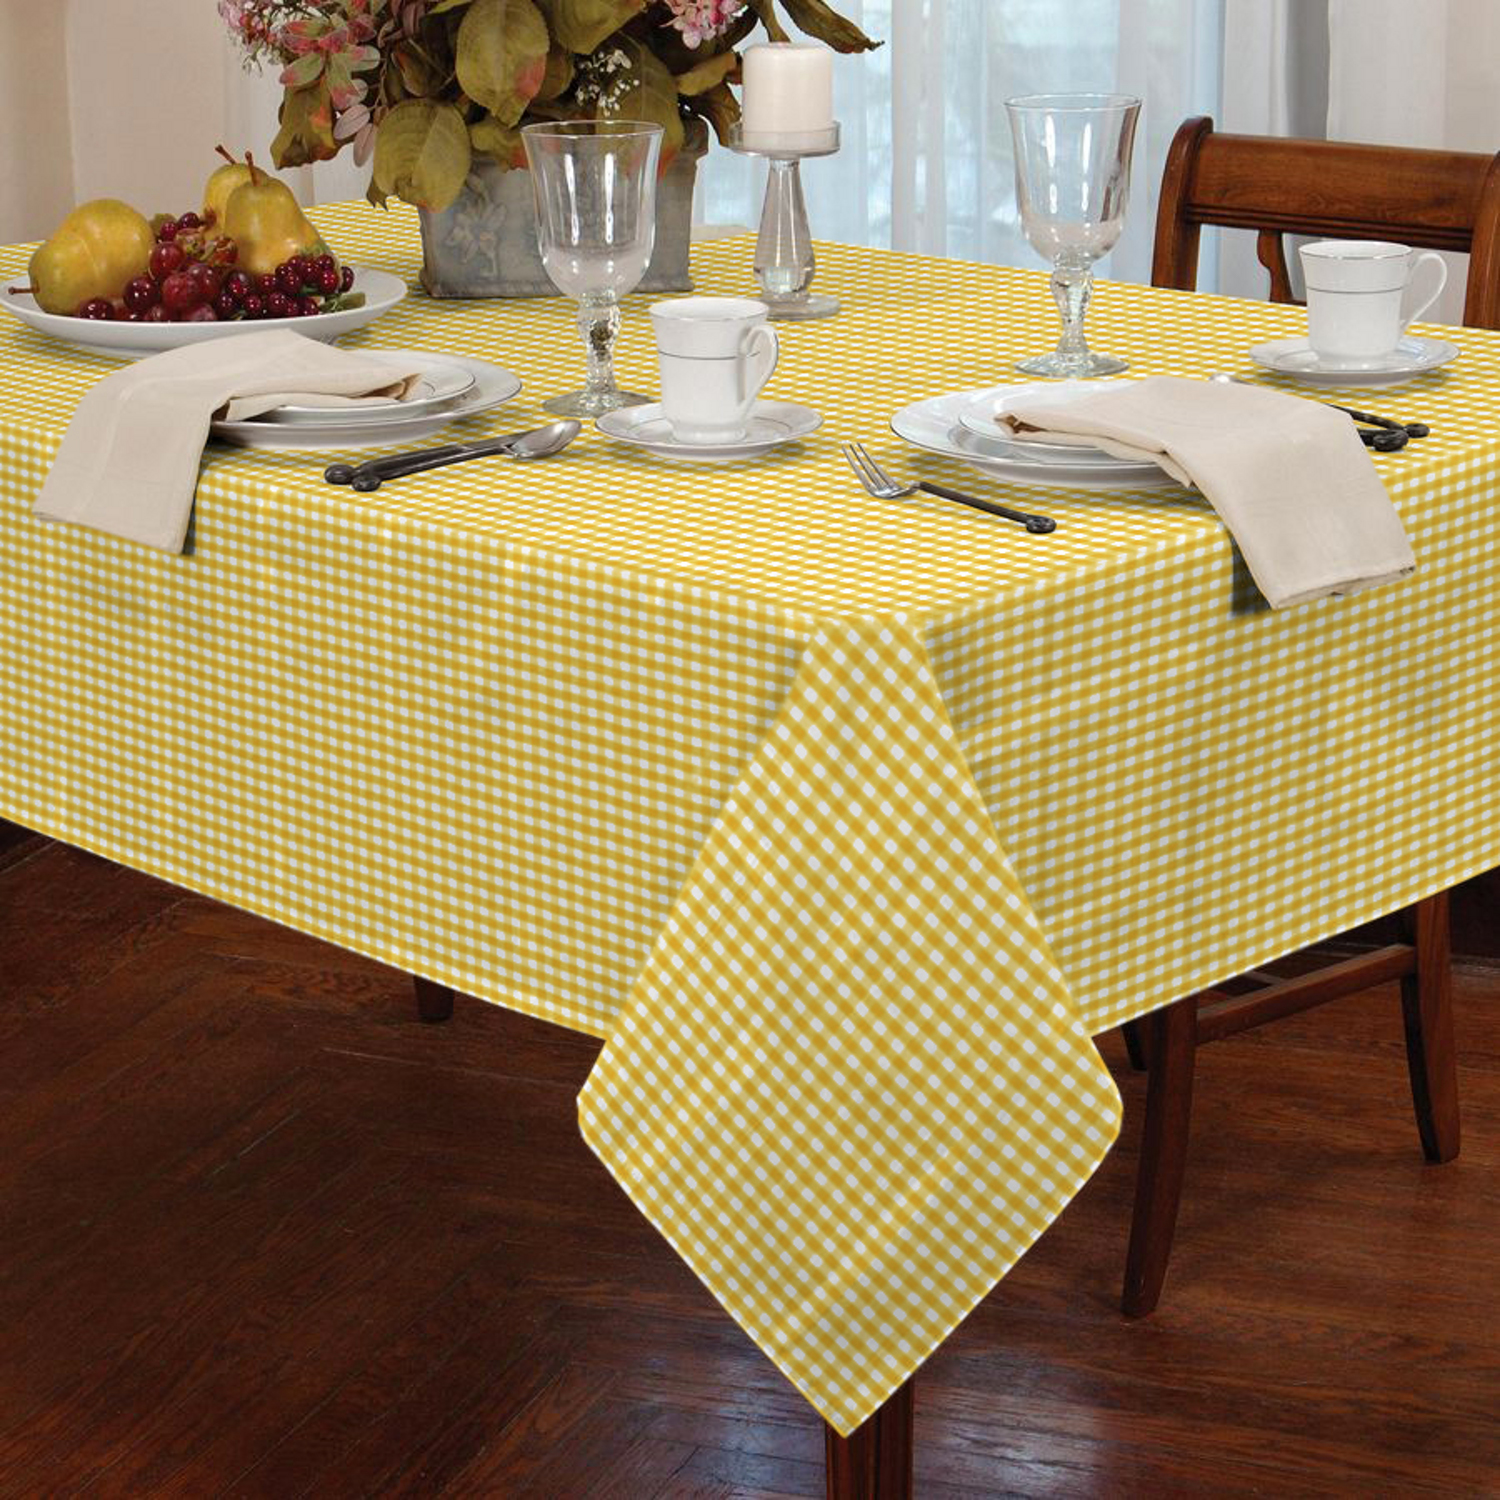 Garden Picnic Gingham Check Tablecloth Dining Room Table  : GinghamTableclothYellow from www.ebay.com size 1500 x 1500 jpeg 1606kB